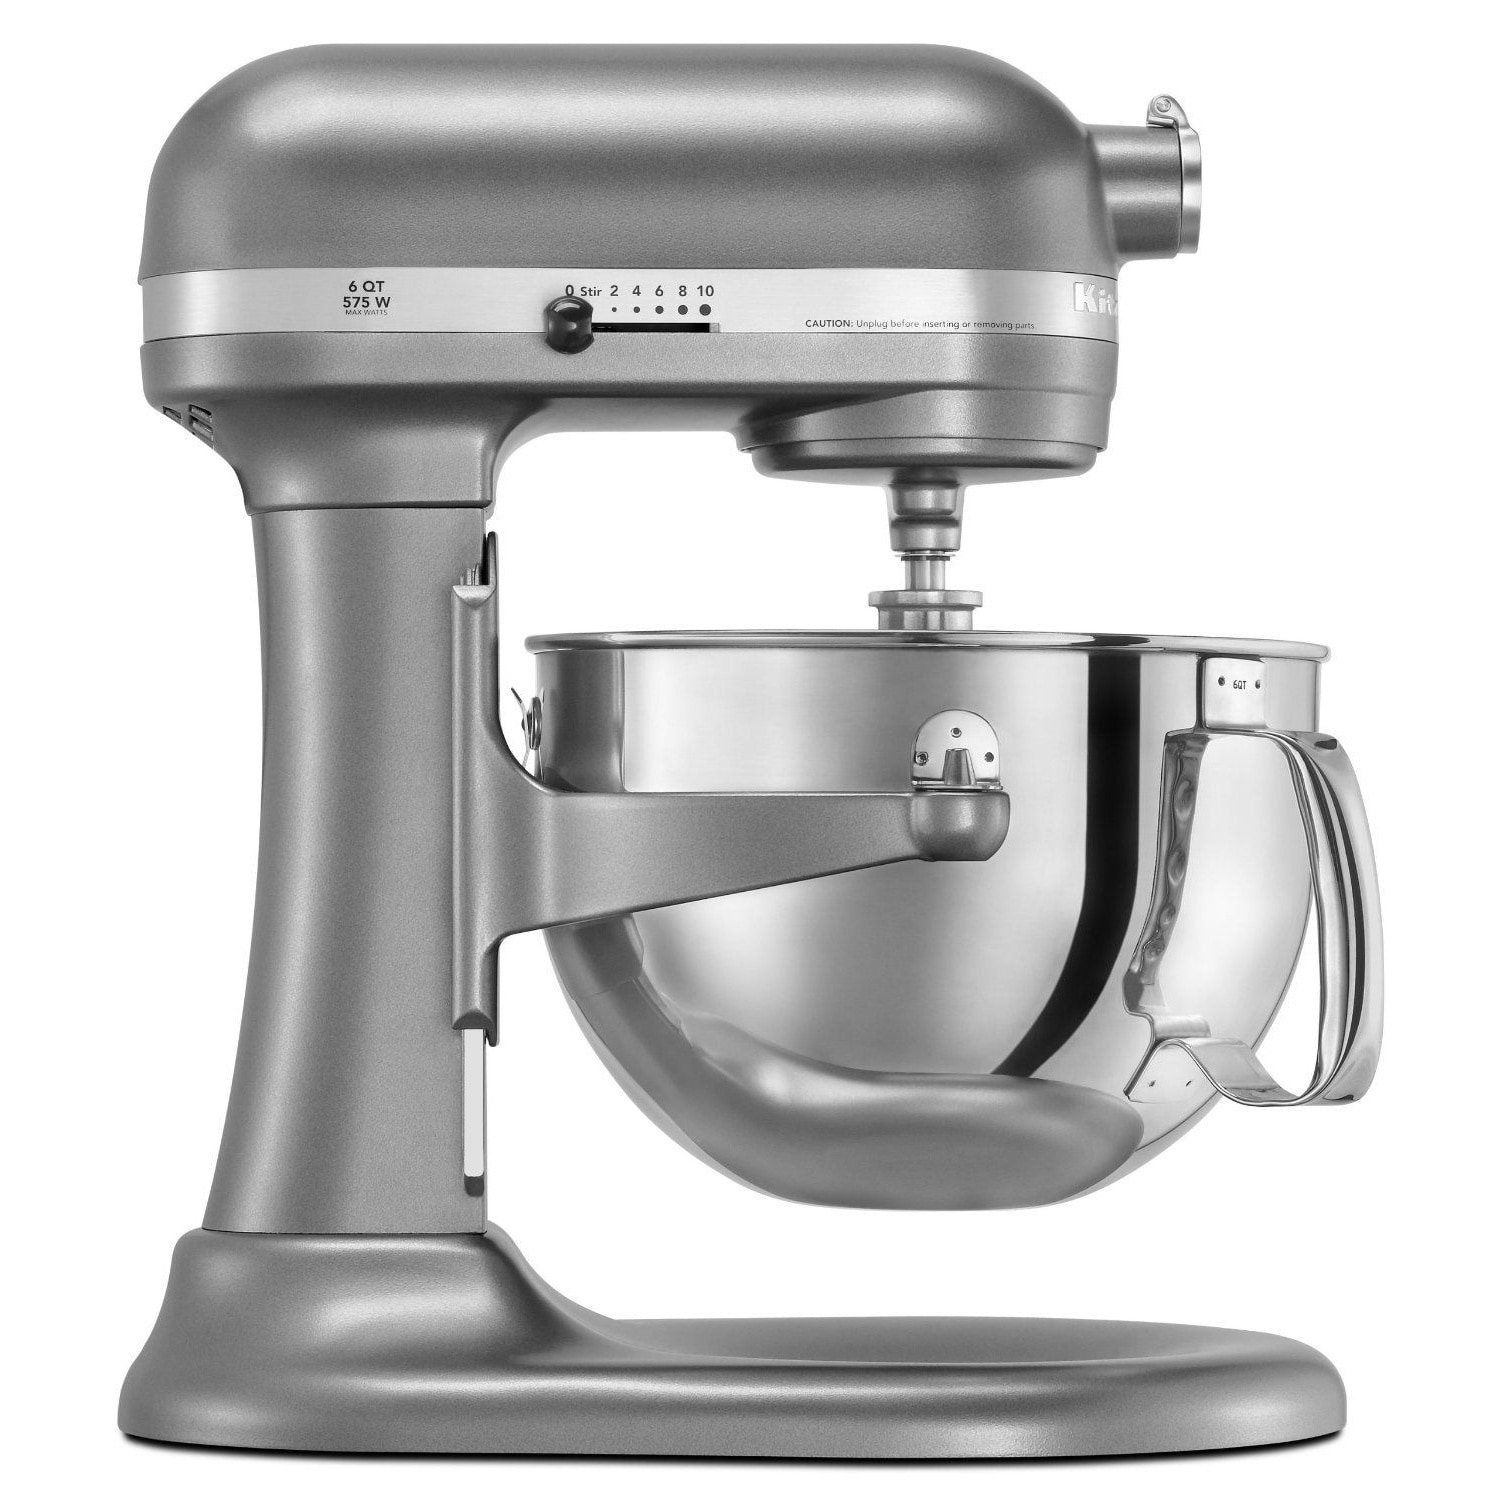 Kitchenaid 6 Quart Pro 600 Stand Mixer (Refurbished)  Free Shipping